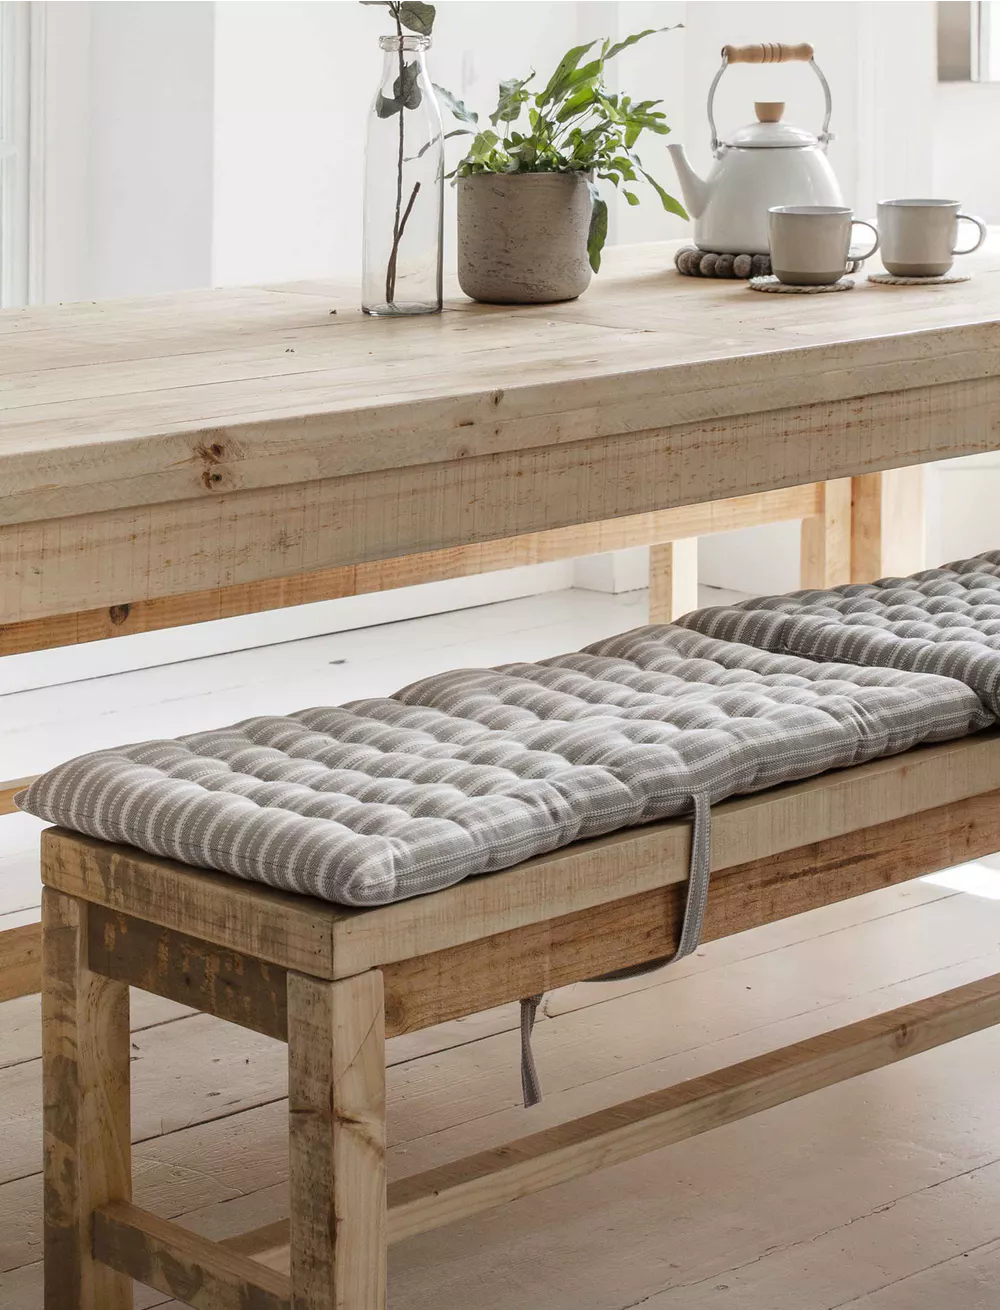 34+ Arts and crafts coffee table uk ideas